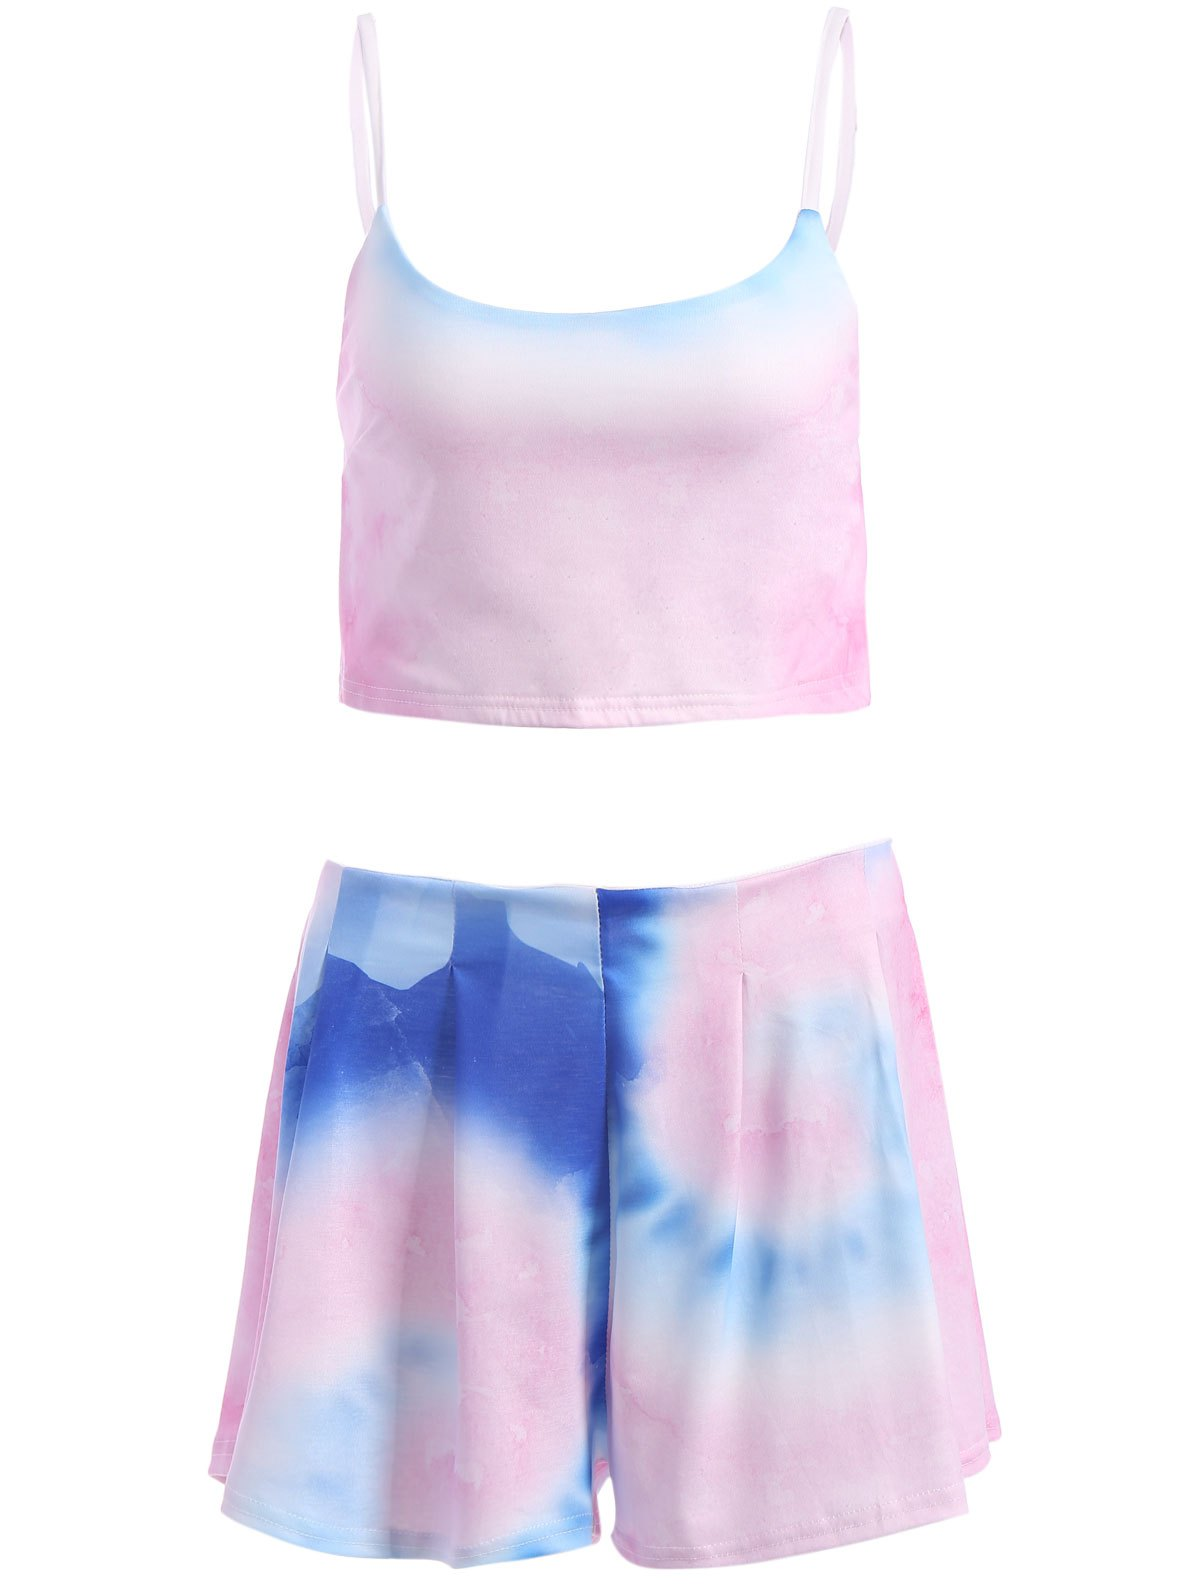 Colored Cami Crop Top and Flouncy Shorts Swimsuit